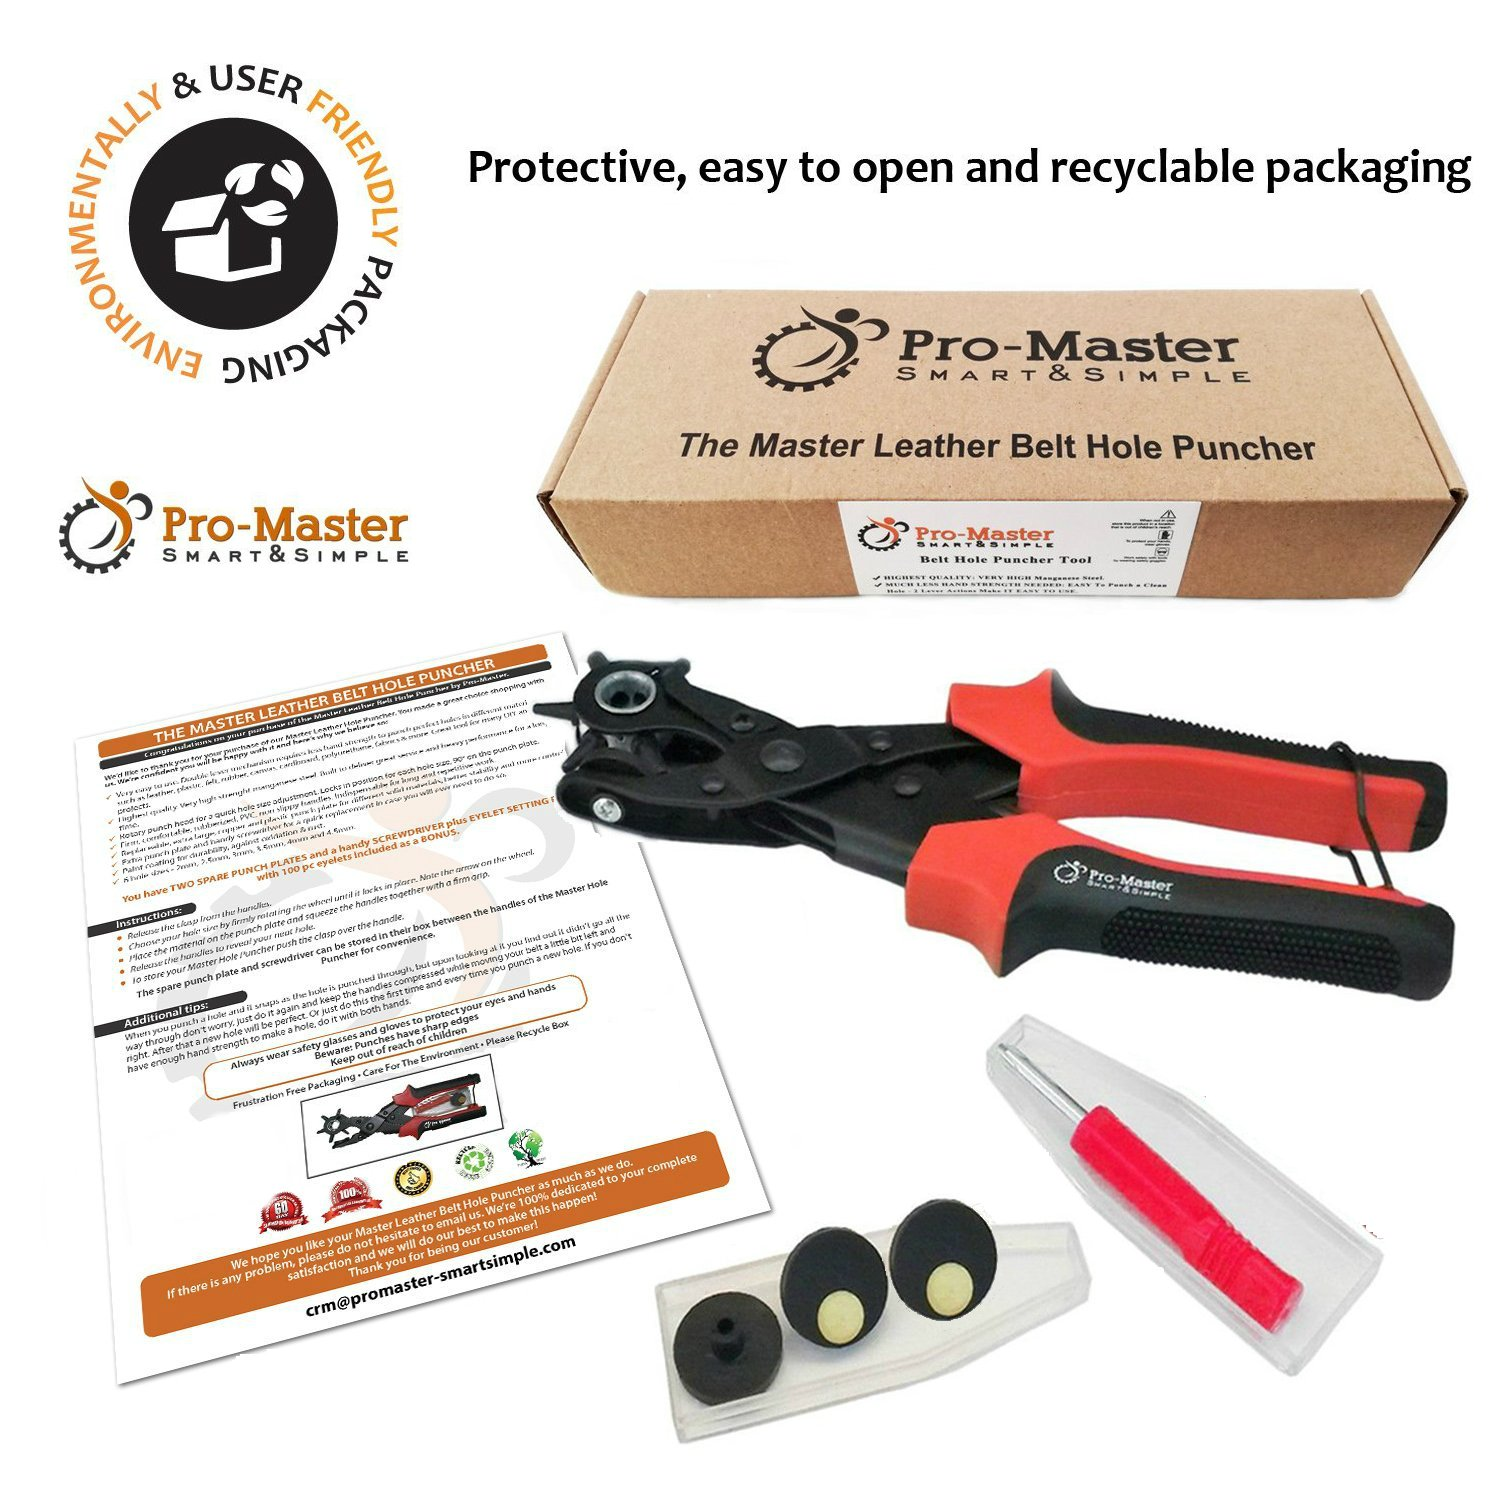 Best Leather Hole Punch Set for Belts, Watch Bands, Straps, Dog Collars, Saddles, Shoes, Fabric, DIY Home or Craft Projects. Super Heavy Duty Rotary Puncher, Multi Hole Sizes Maker Tool, 3 Yr Warranty by ProMaster (Image #7)